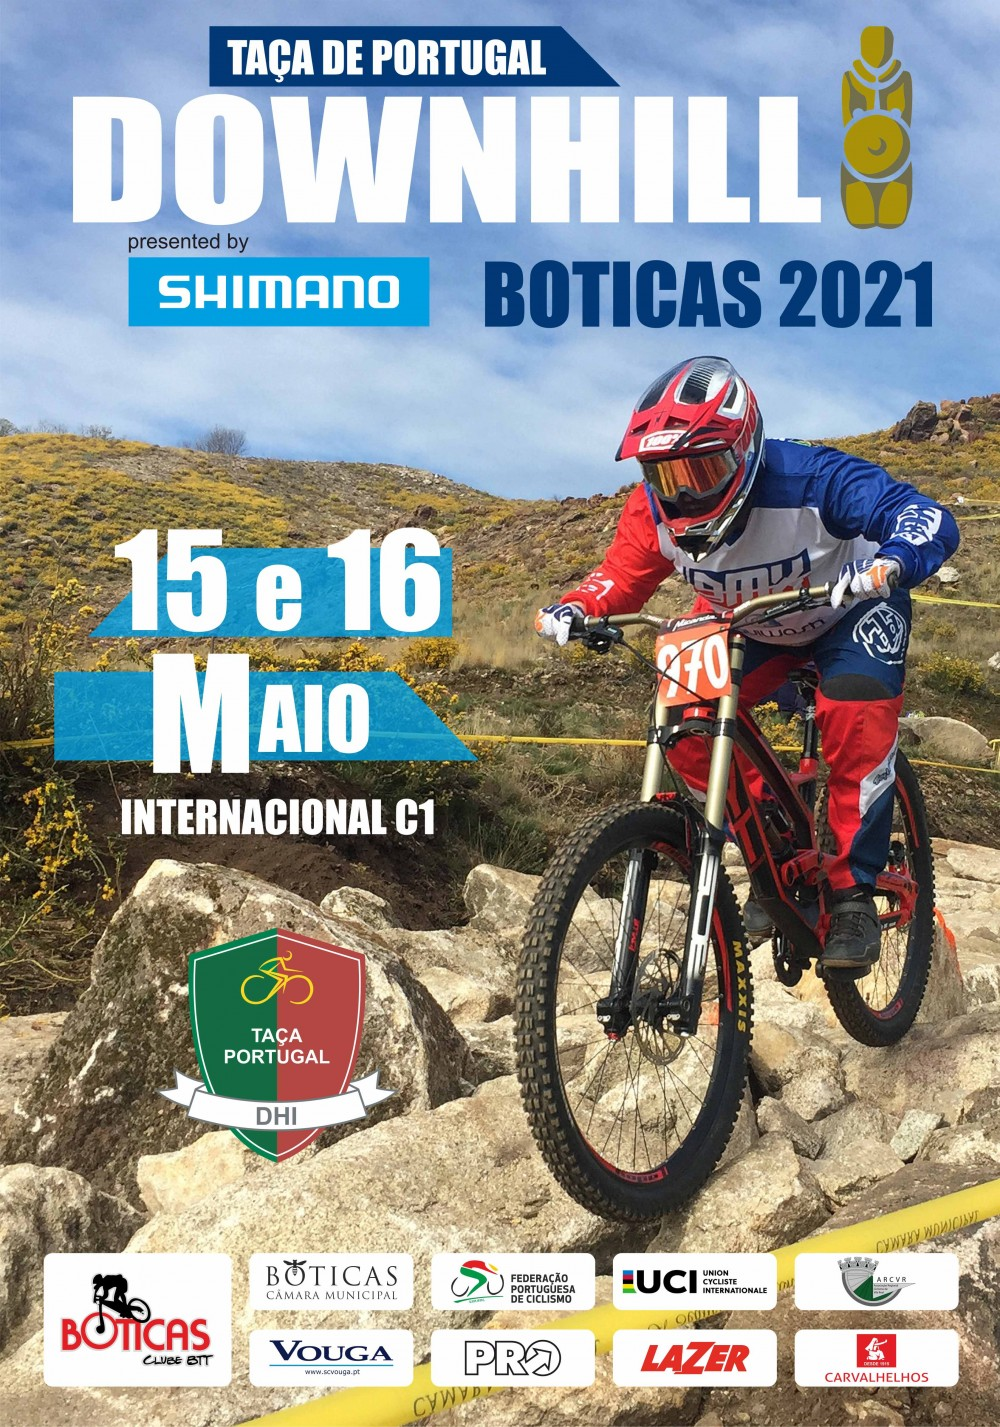 2ª Taça de Portugal Downhill presented by Shimano